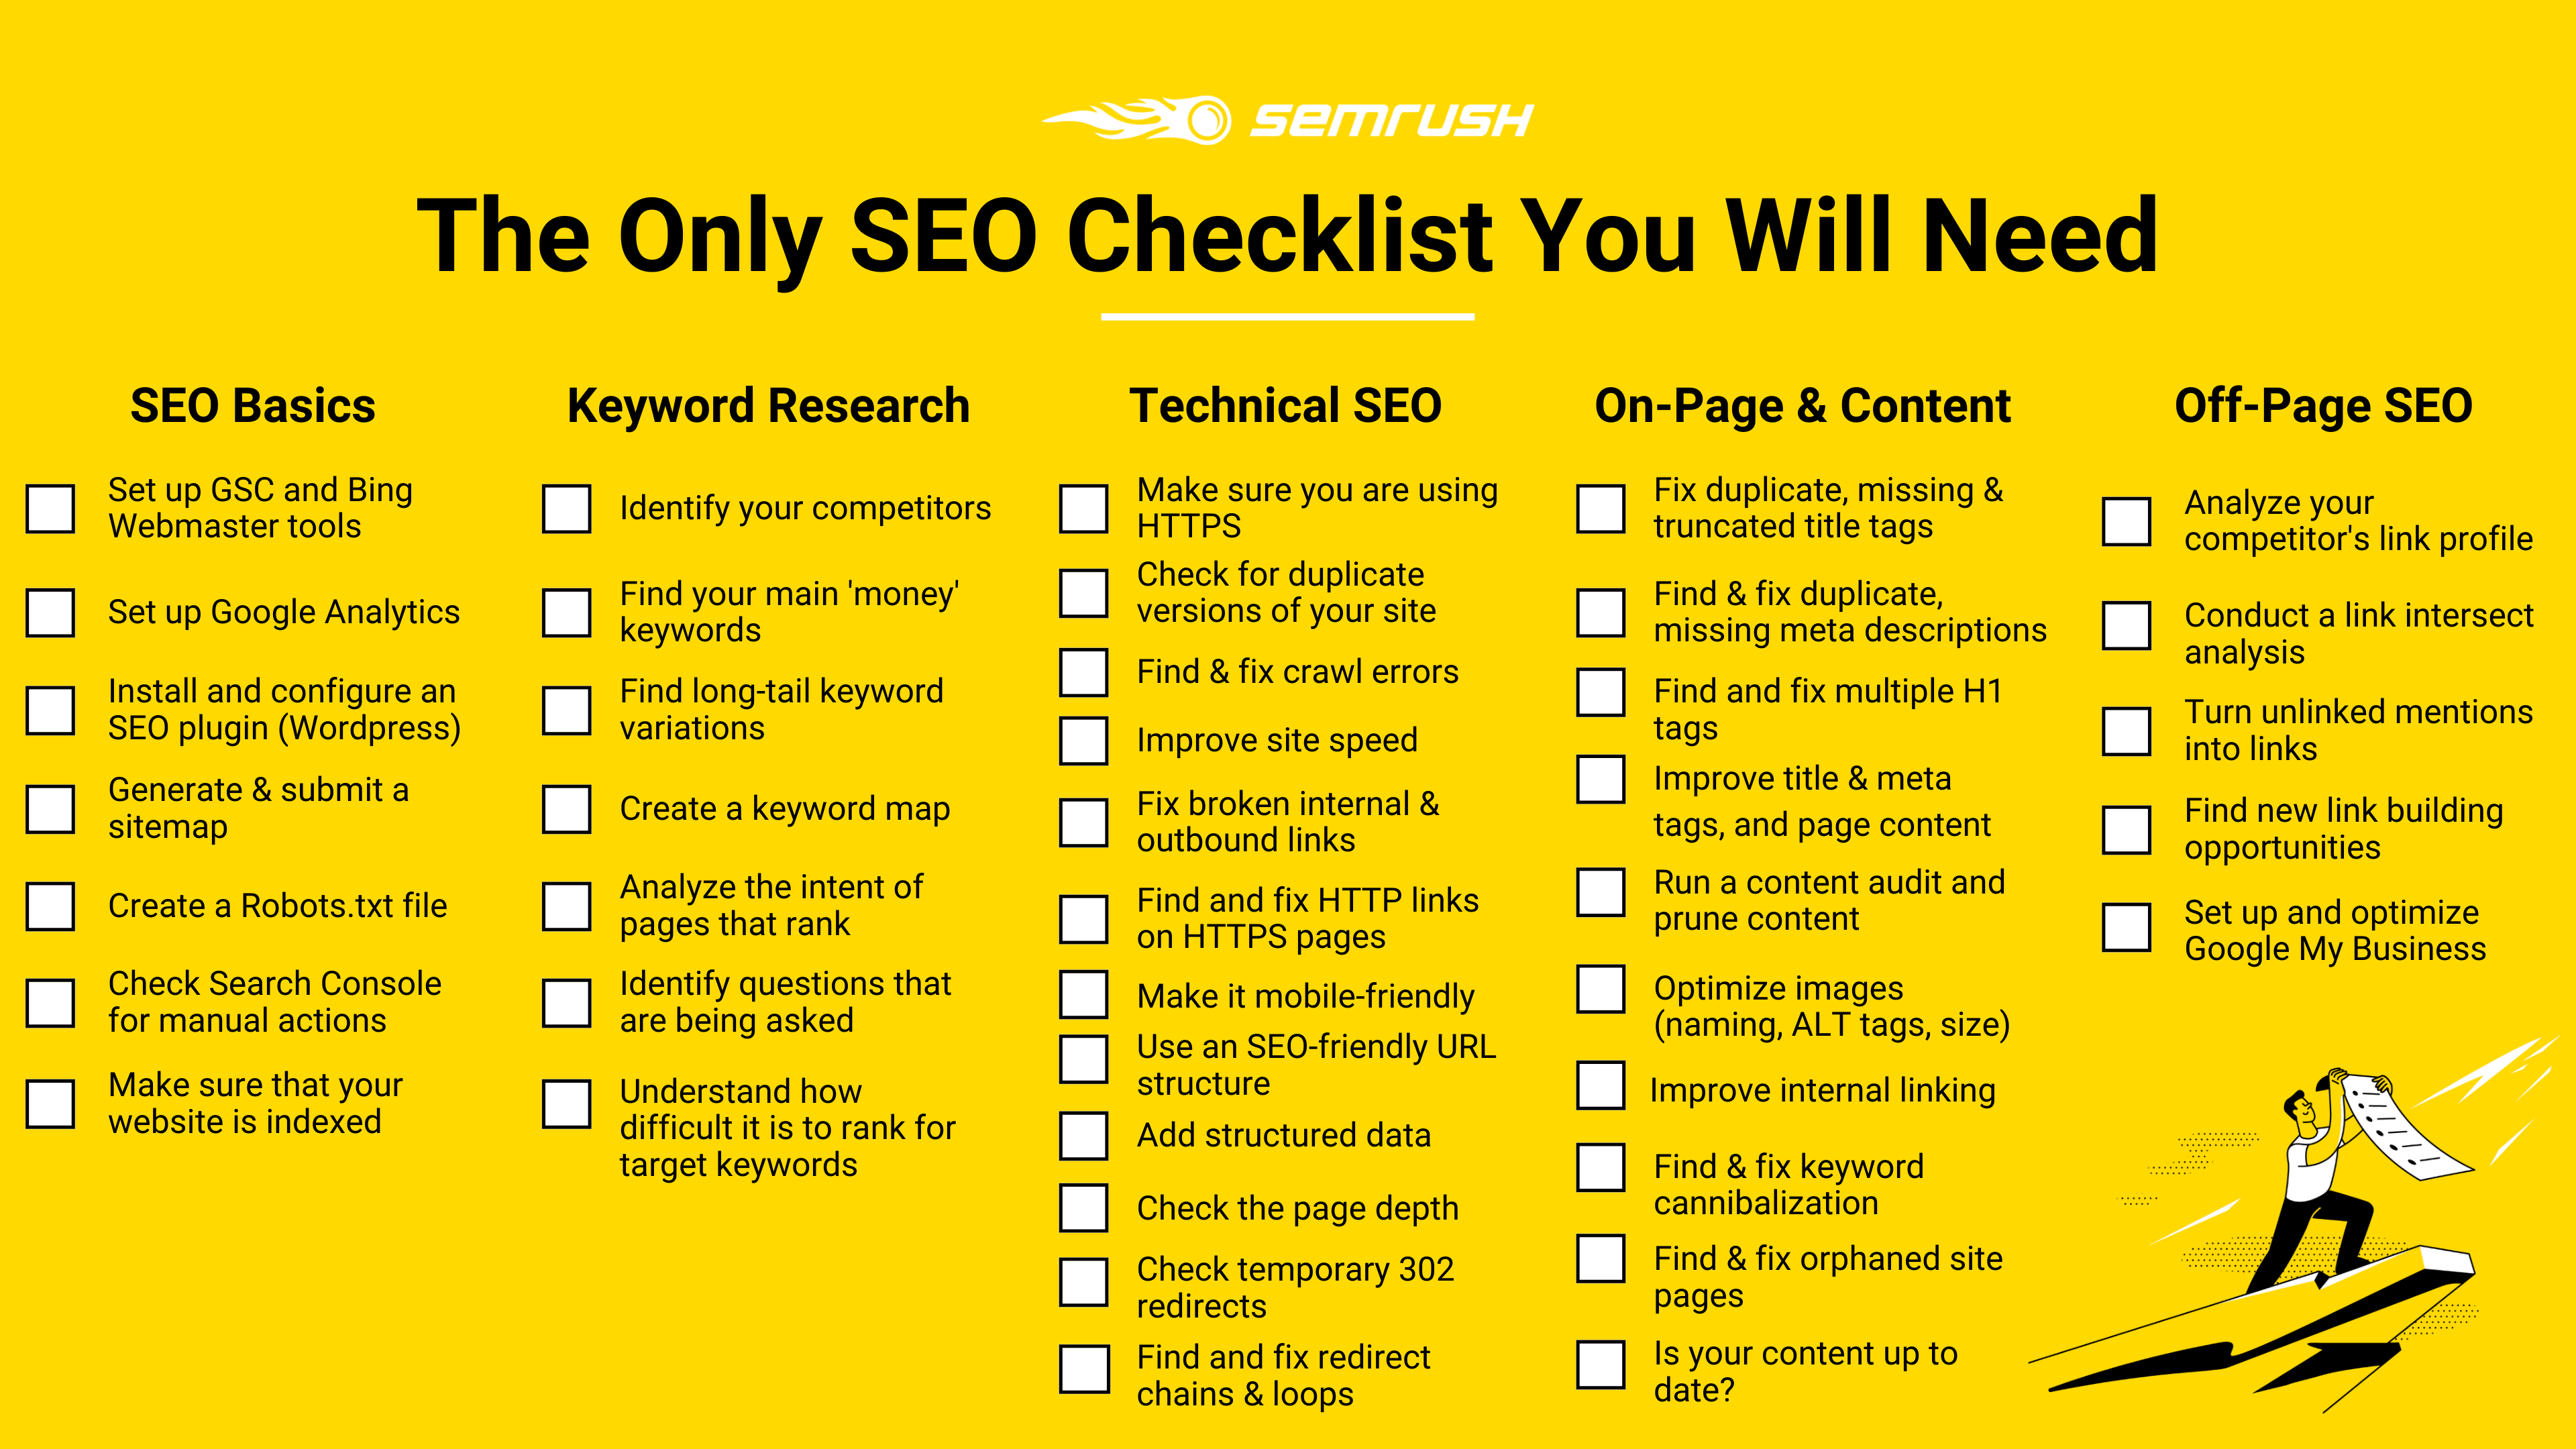 The Only SEO Checklist You Will Need